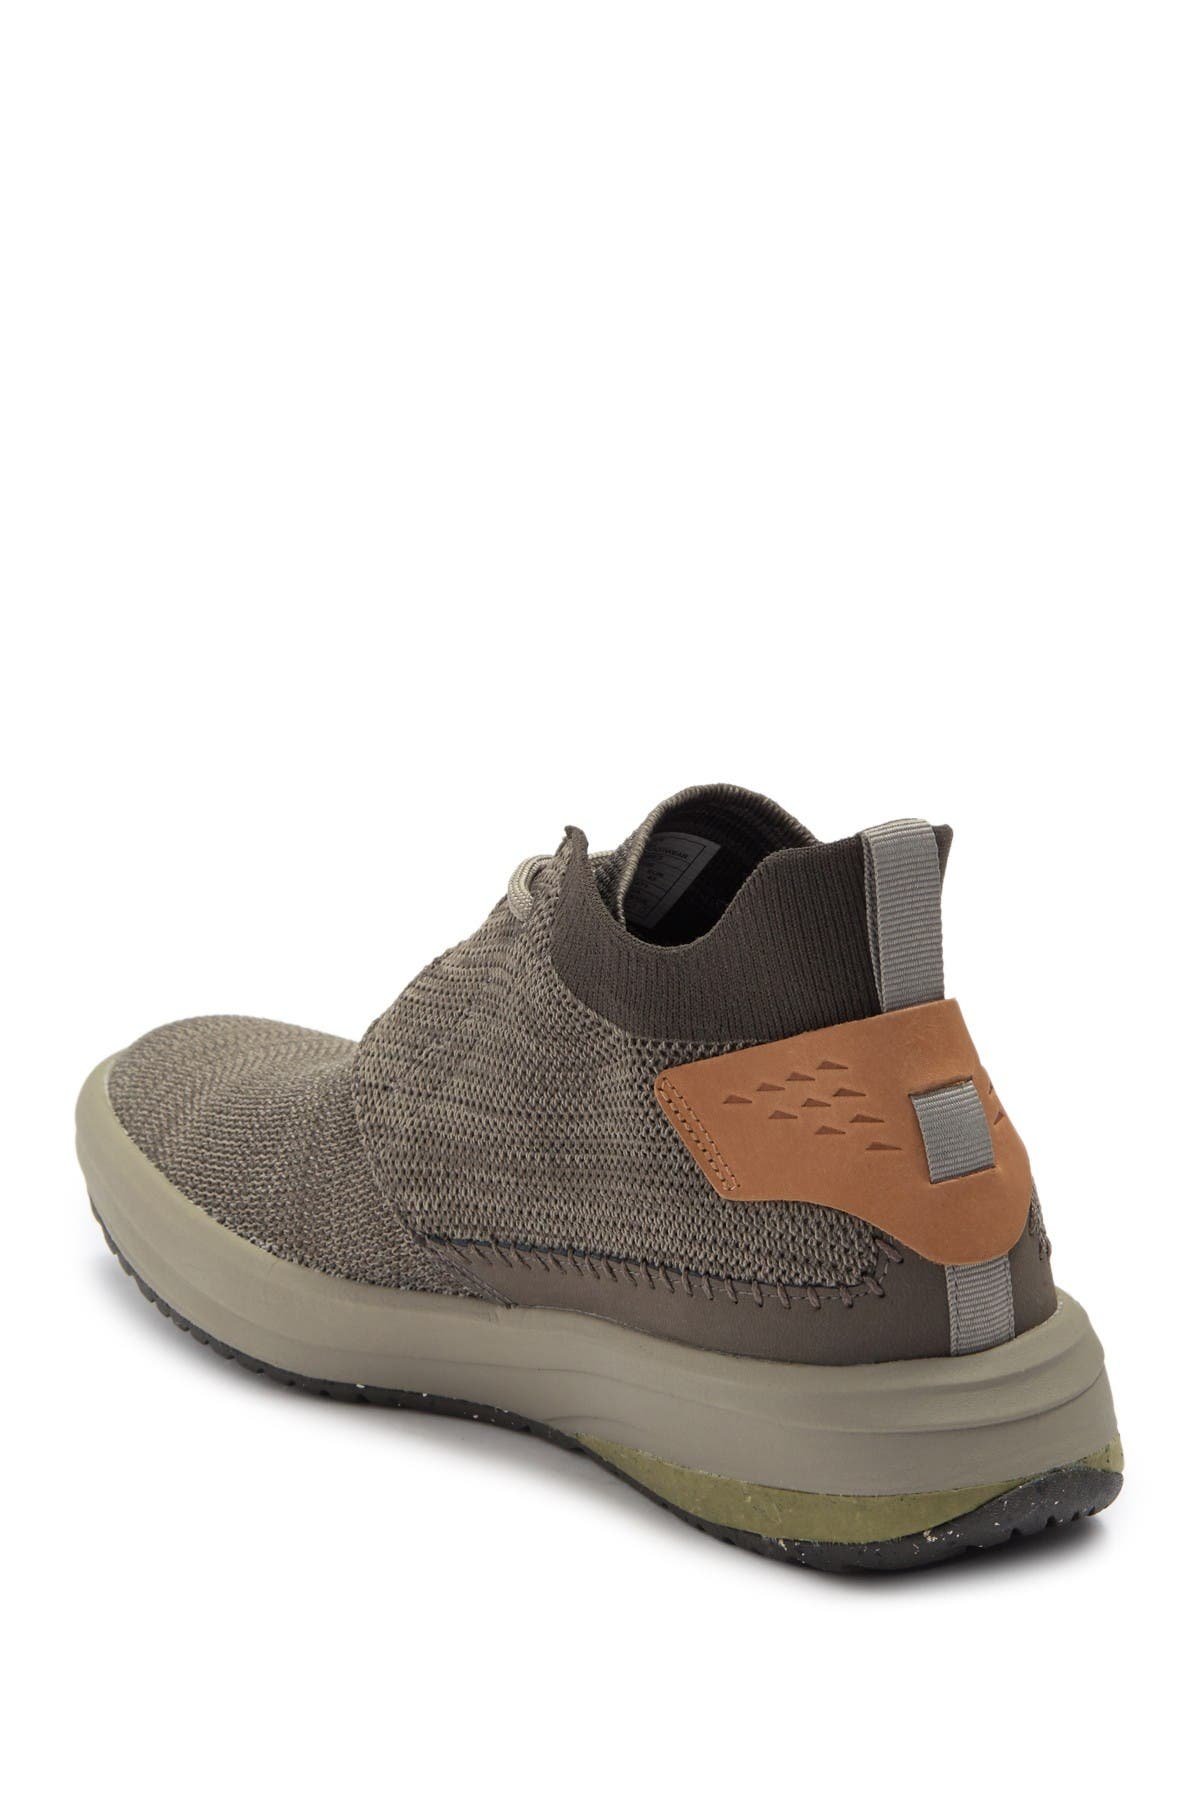 Image of Merrell Gridway Mid Knit Sneaker